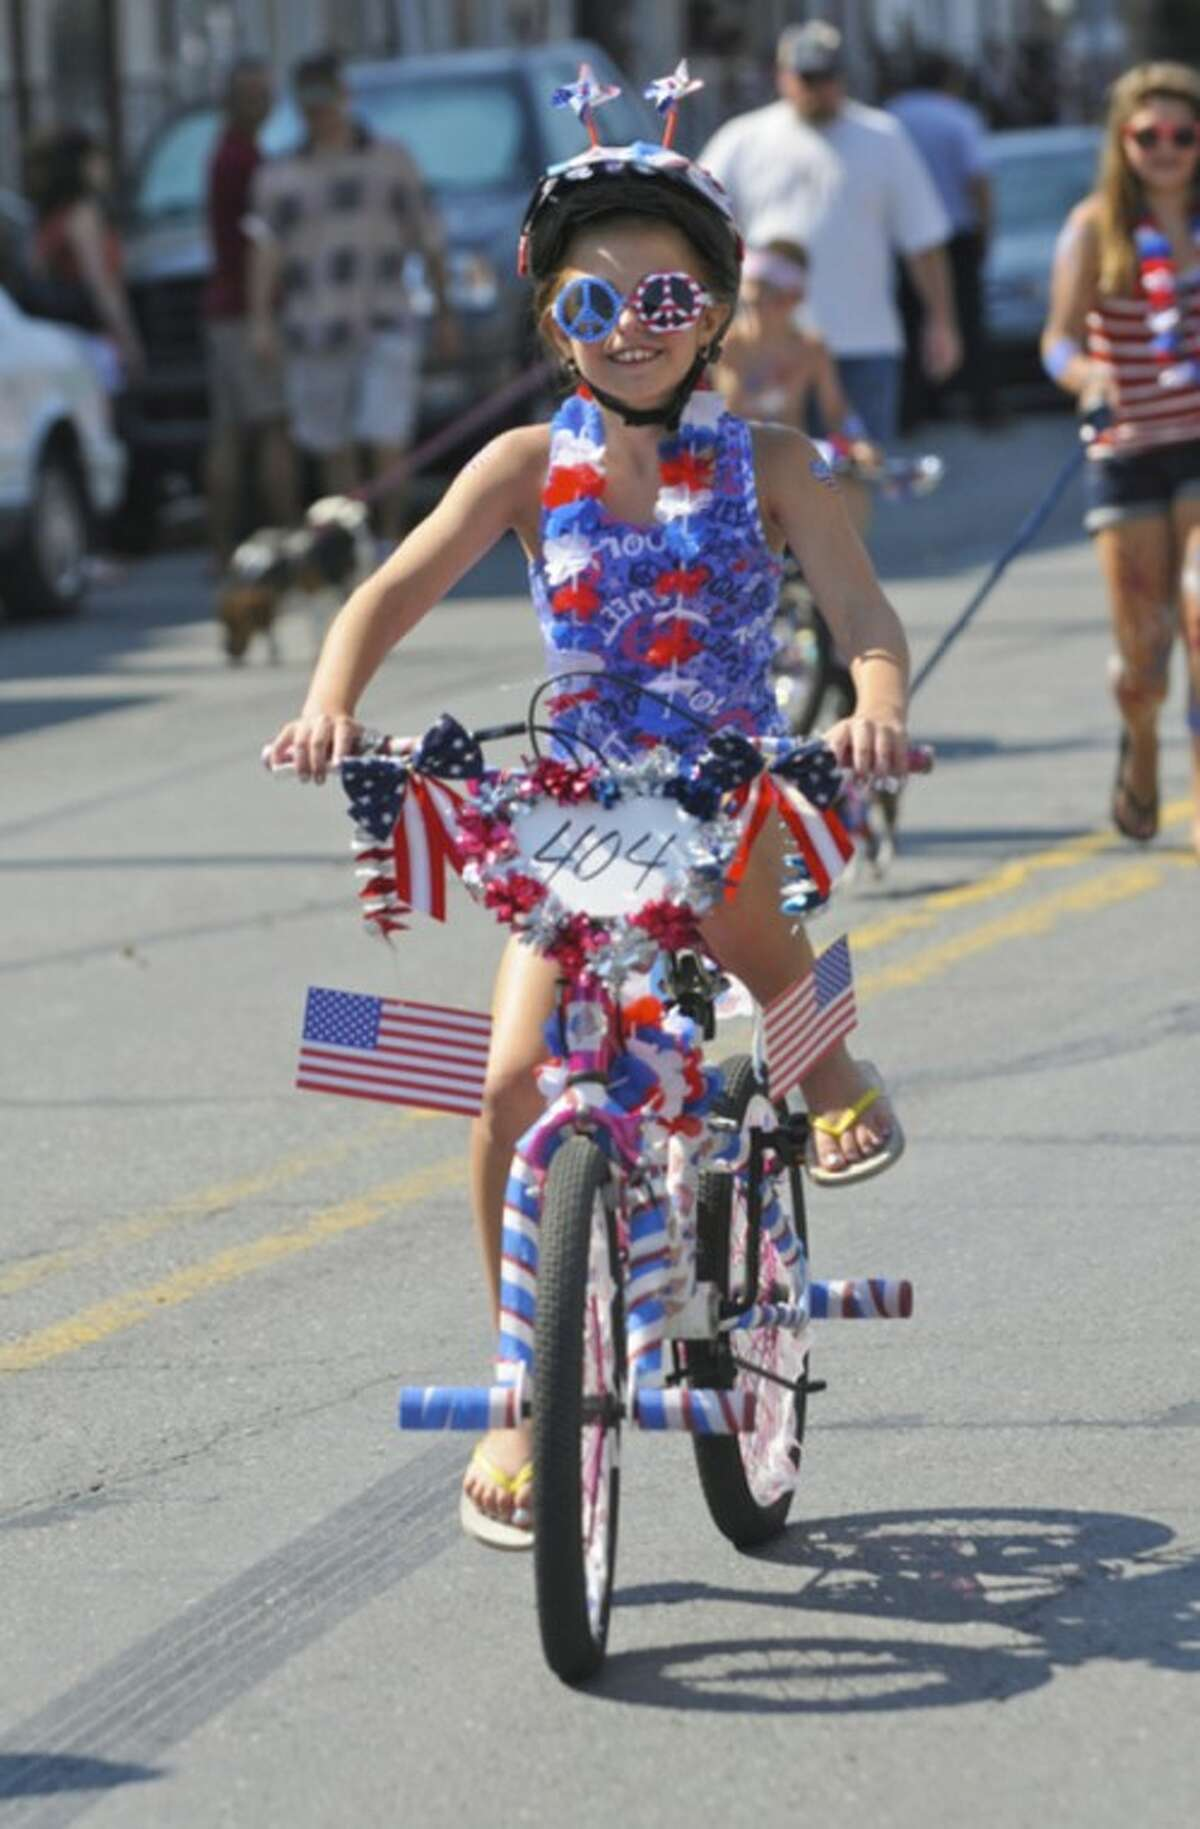 """Brianna Honis participates in the Port Carbon Citizens Committee's annual Fourth of July Parade nicknamed the """"Baby Parade"""" in Port Carbon, Pa. Wednesday, July 4, 2012. (AP Photo/Republican-Herald, Jacqueline Dormer)"""